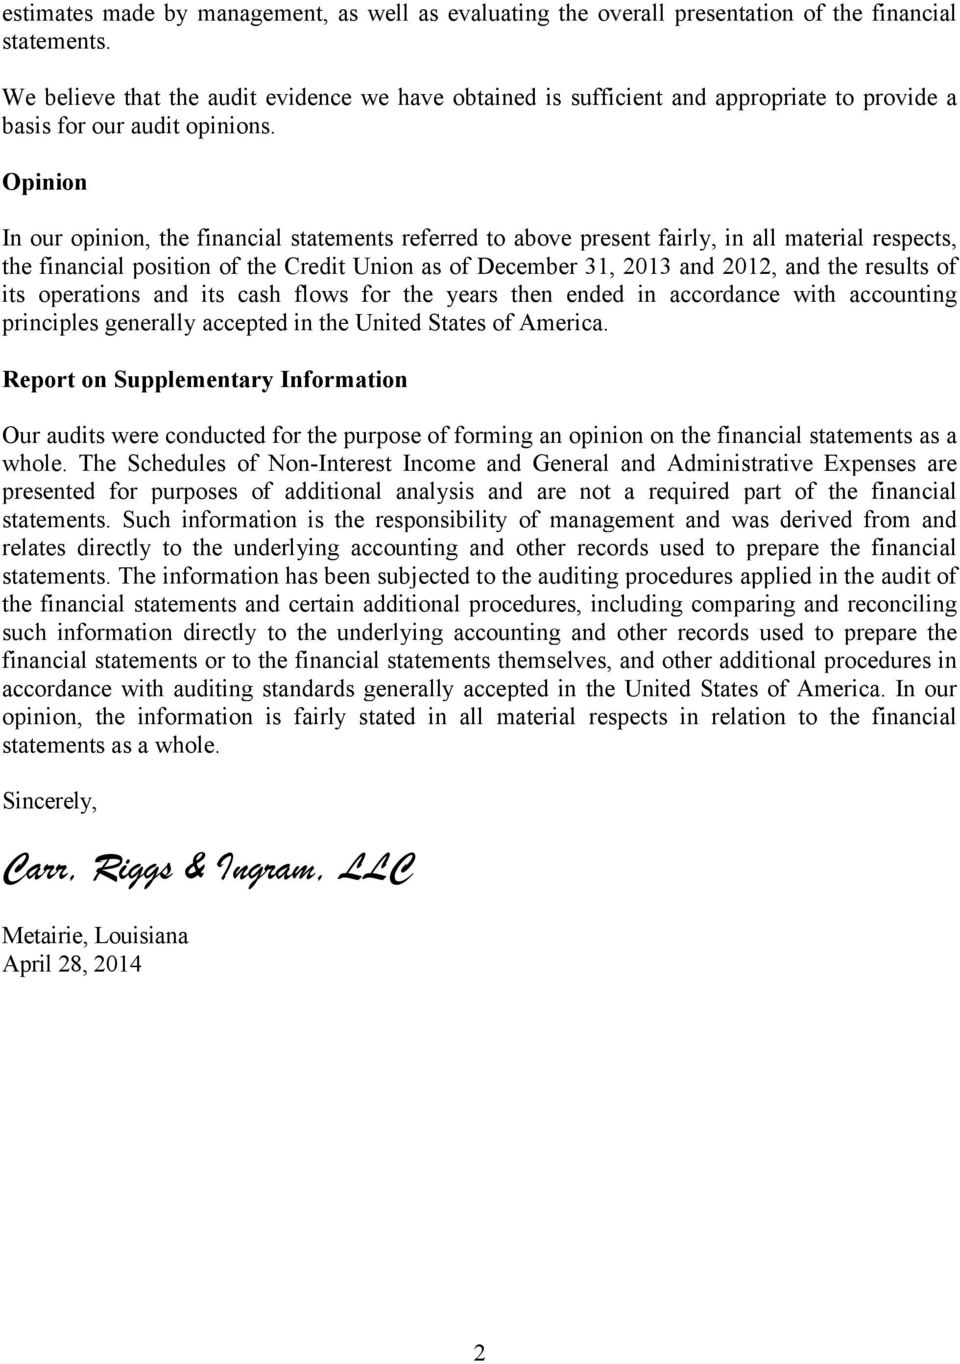 Opinion In our opinion, the financial statements referred to above present fairly, in all material respects, the financial position of the Credit Union as of December 31, 2013 and 2012, and the